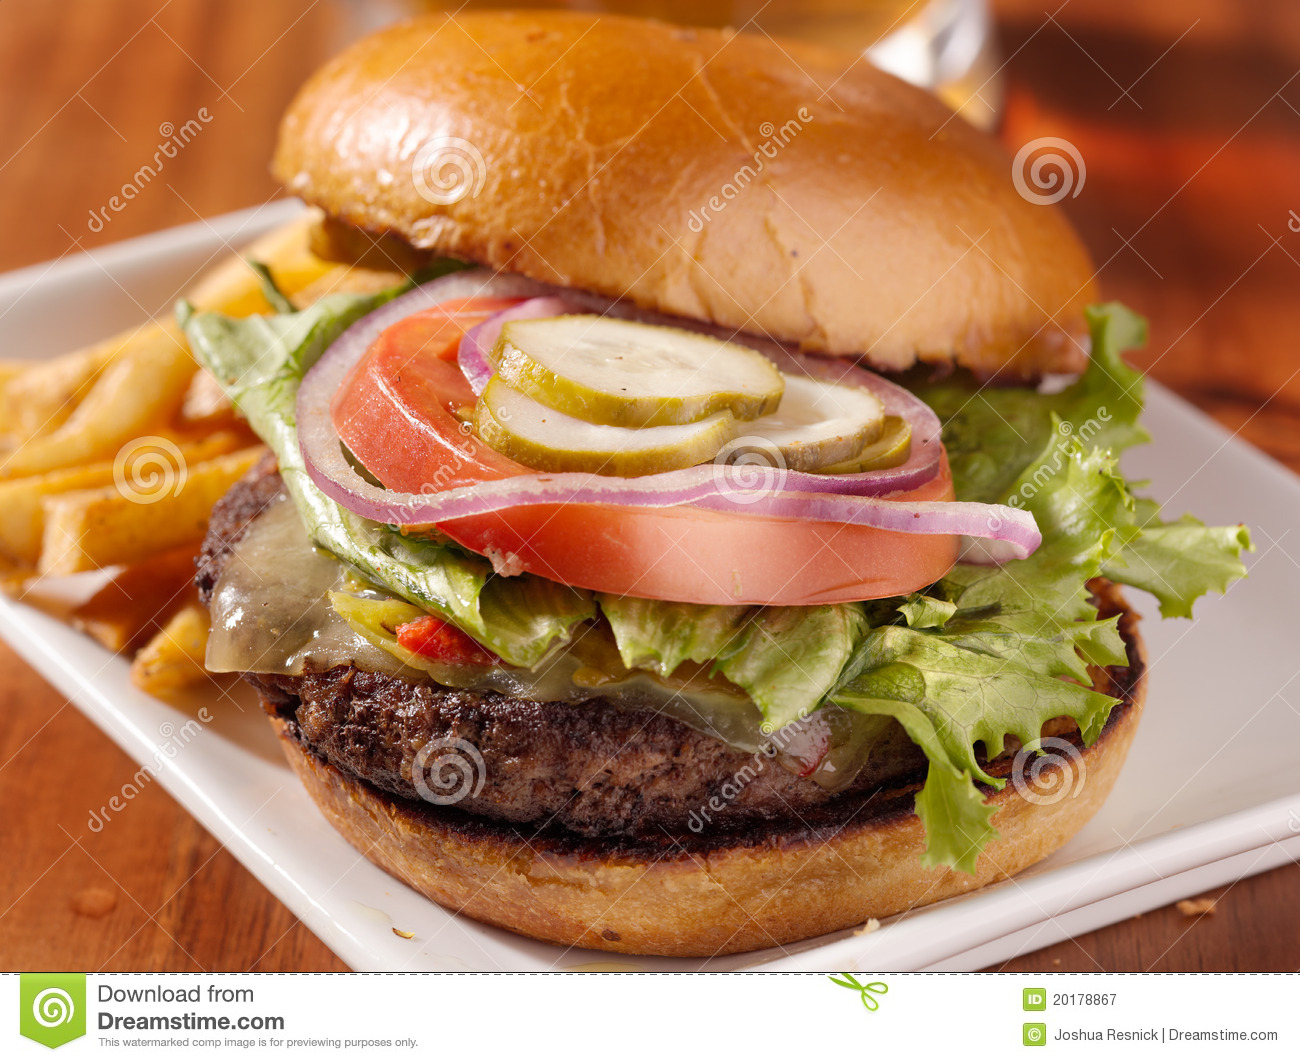 Royalty Free Stock Photography  Gourmet cheeseburger and friesGourmet Cheeseburgers